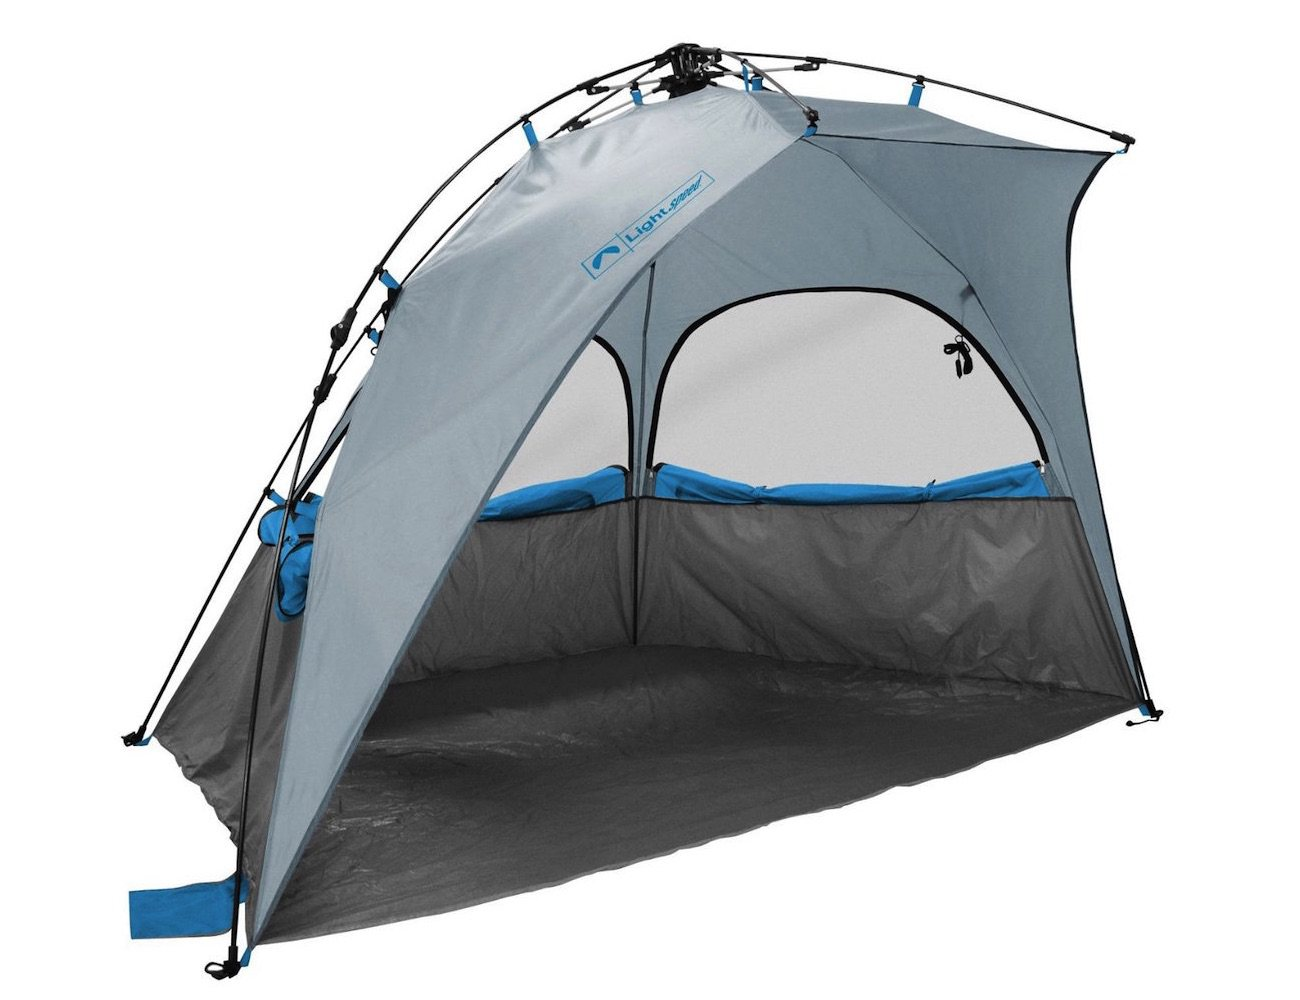 ... Bahia Quick Shelter u2013 Protective Sun Shelter From Lightspeed Outdoors  sc 1 st  Gadget Flow & Bahia Quick Shelter - Protective Sun Shelter From Lightspeed ...